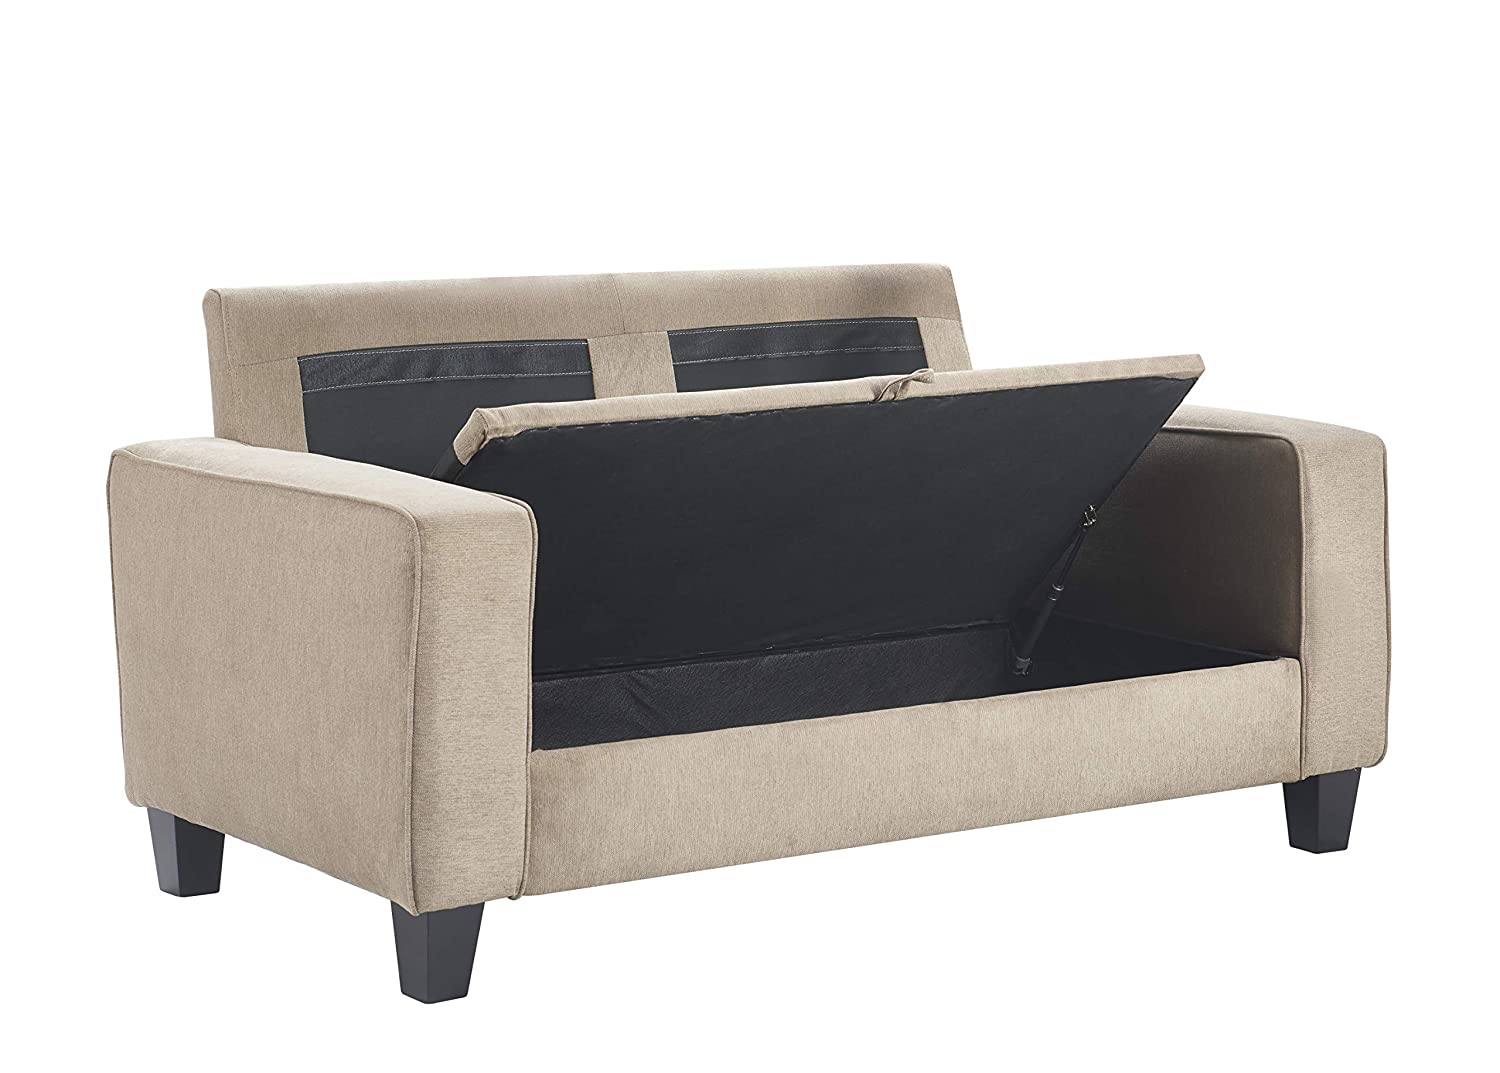 Prime Serta Uph10133E Palisades Storage Loveseat 73 Sofa Beige Gmtry Best Dining Table And Chair Ideas Images Gmtryco